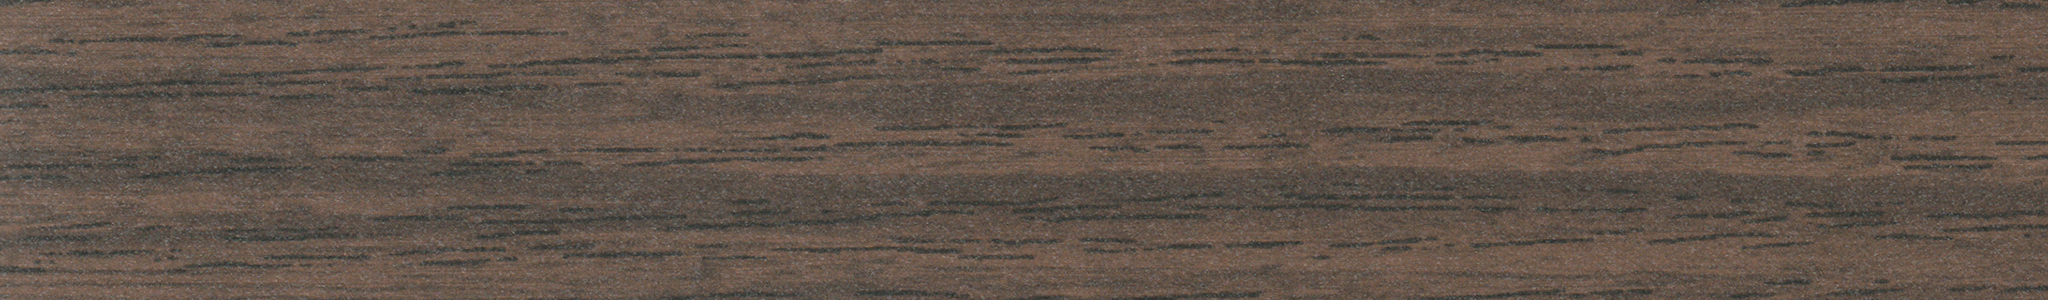 HD 681555 Melamine Edge FALZ Wenge Smooth